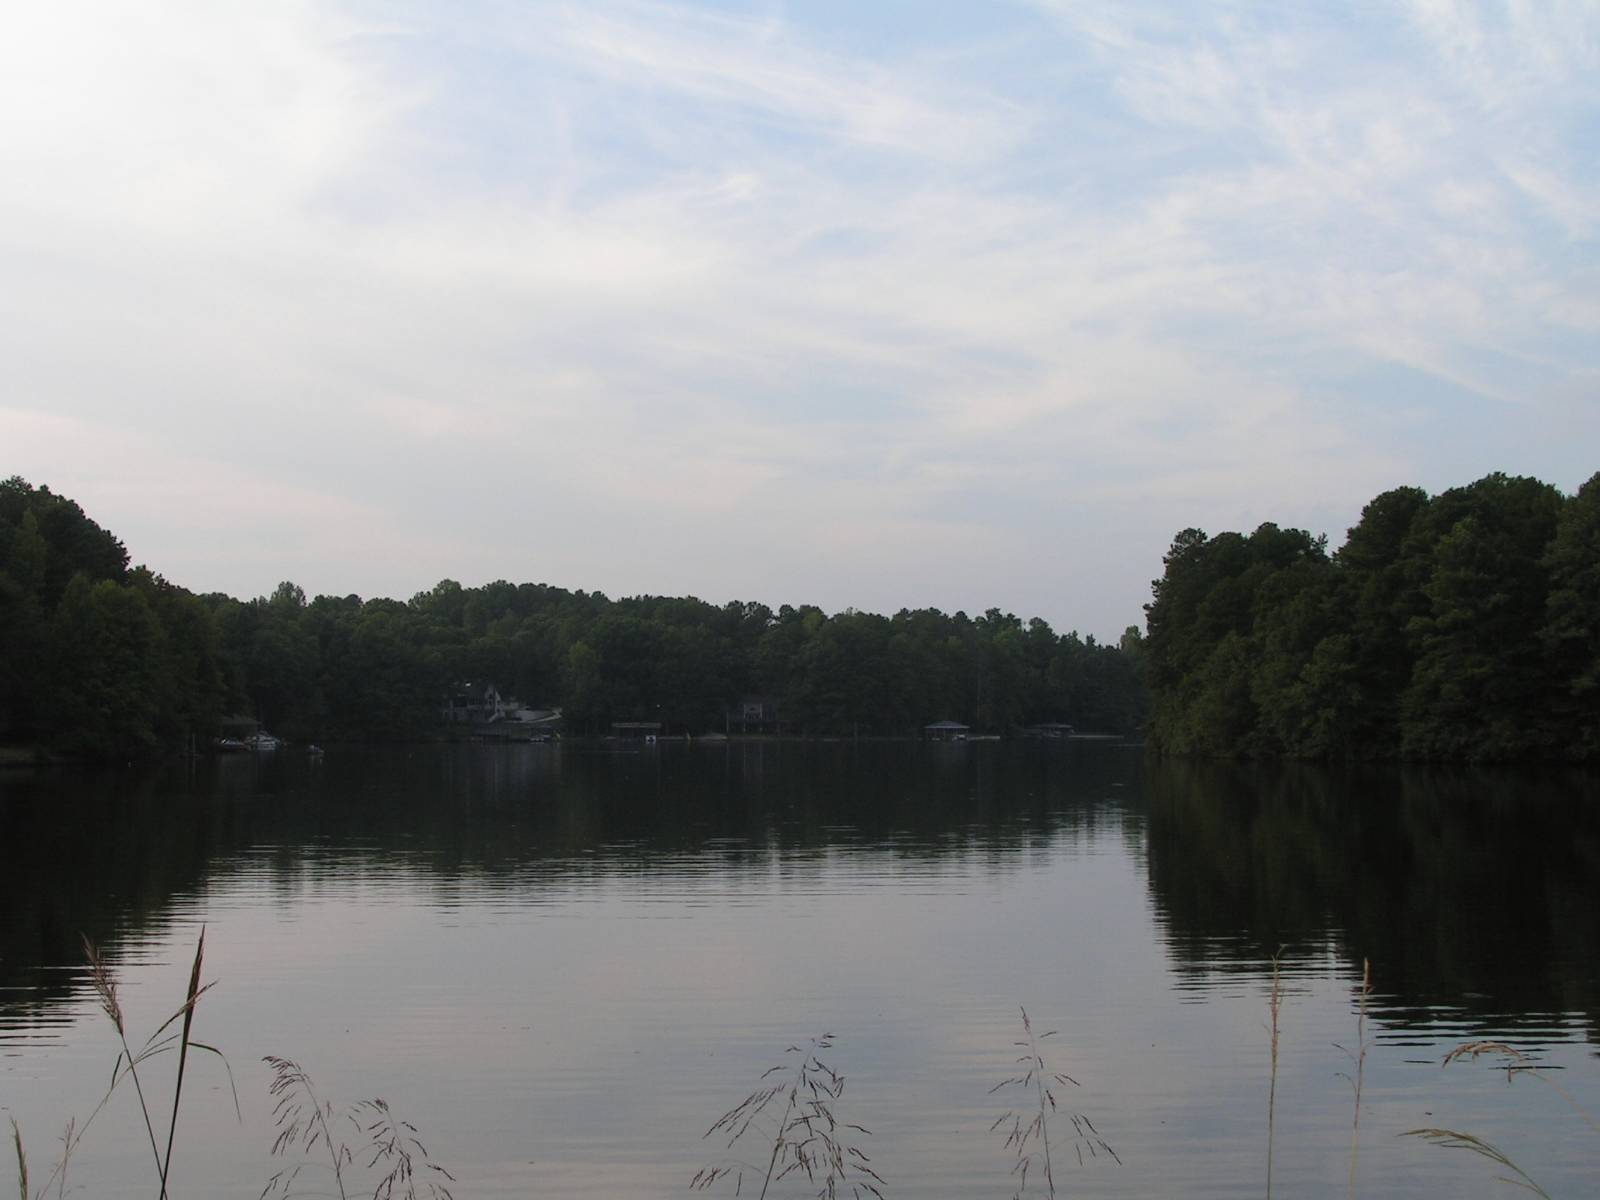 file:lake peachtree ptc ga - wikimedia commons